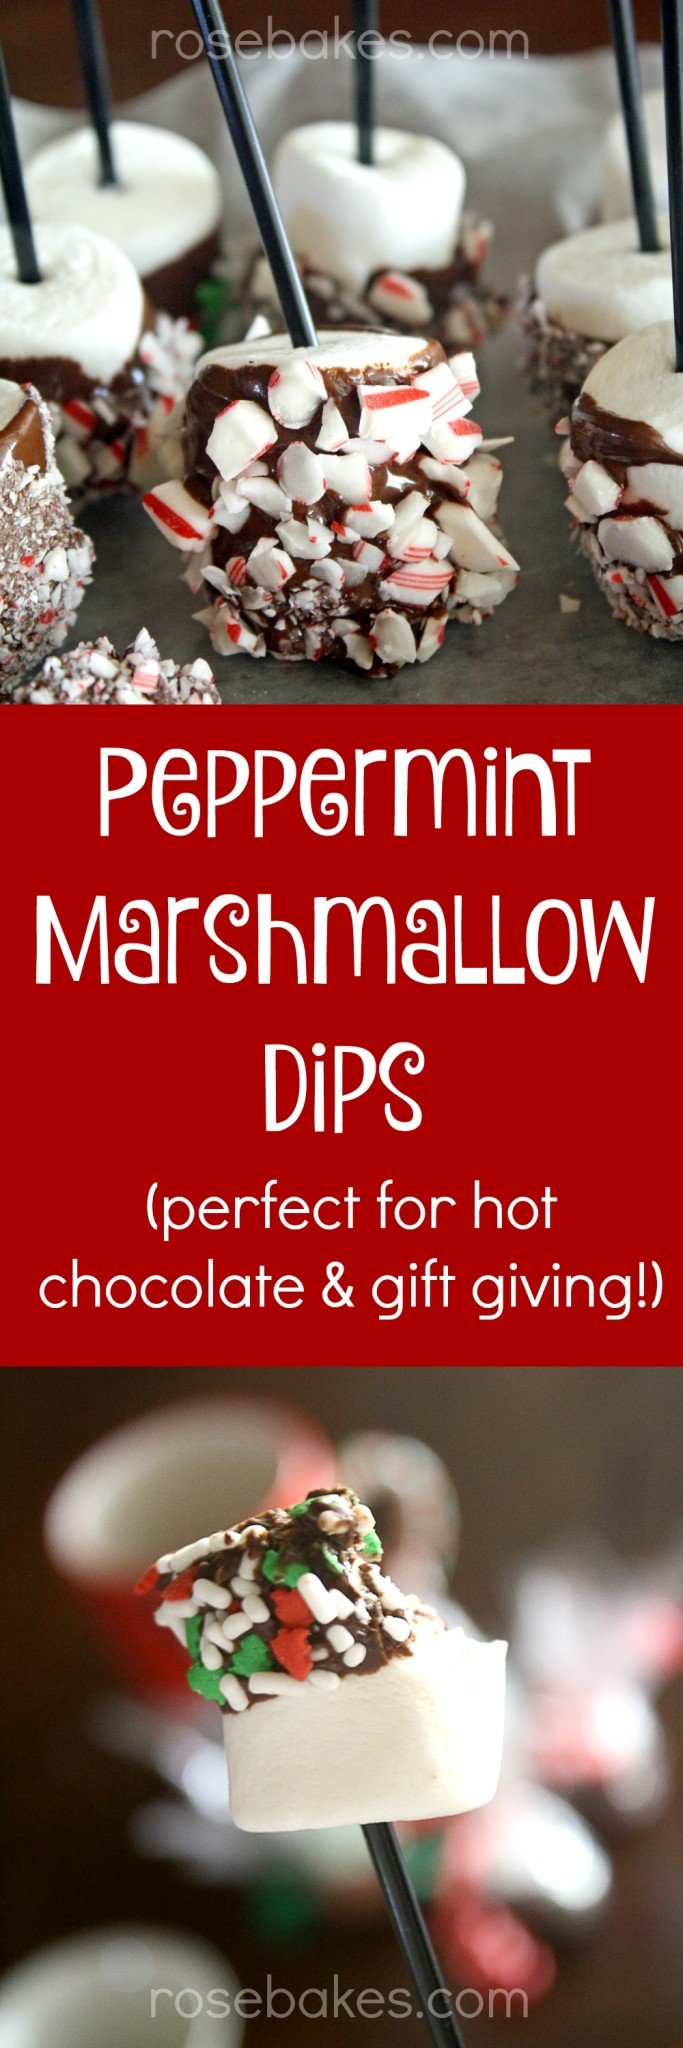 Peppermint-Marshmallow-Dips-These-are-perfect-for-dipping-in-hot-chocolate-eating-right-off-the-stick-or-wrapping-up-to-give-as-a-gift-with-a-coffee-mug-hot-chocolate